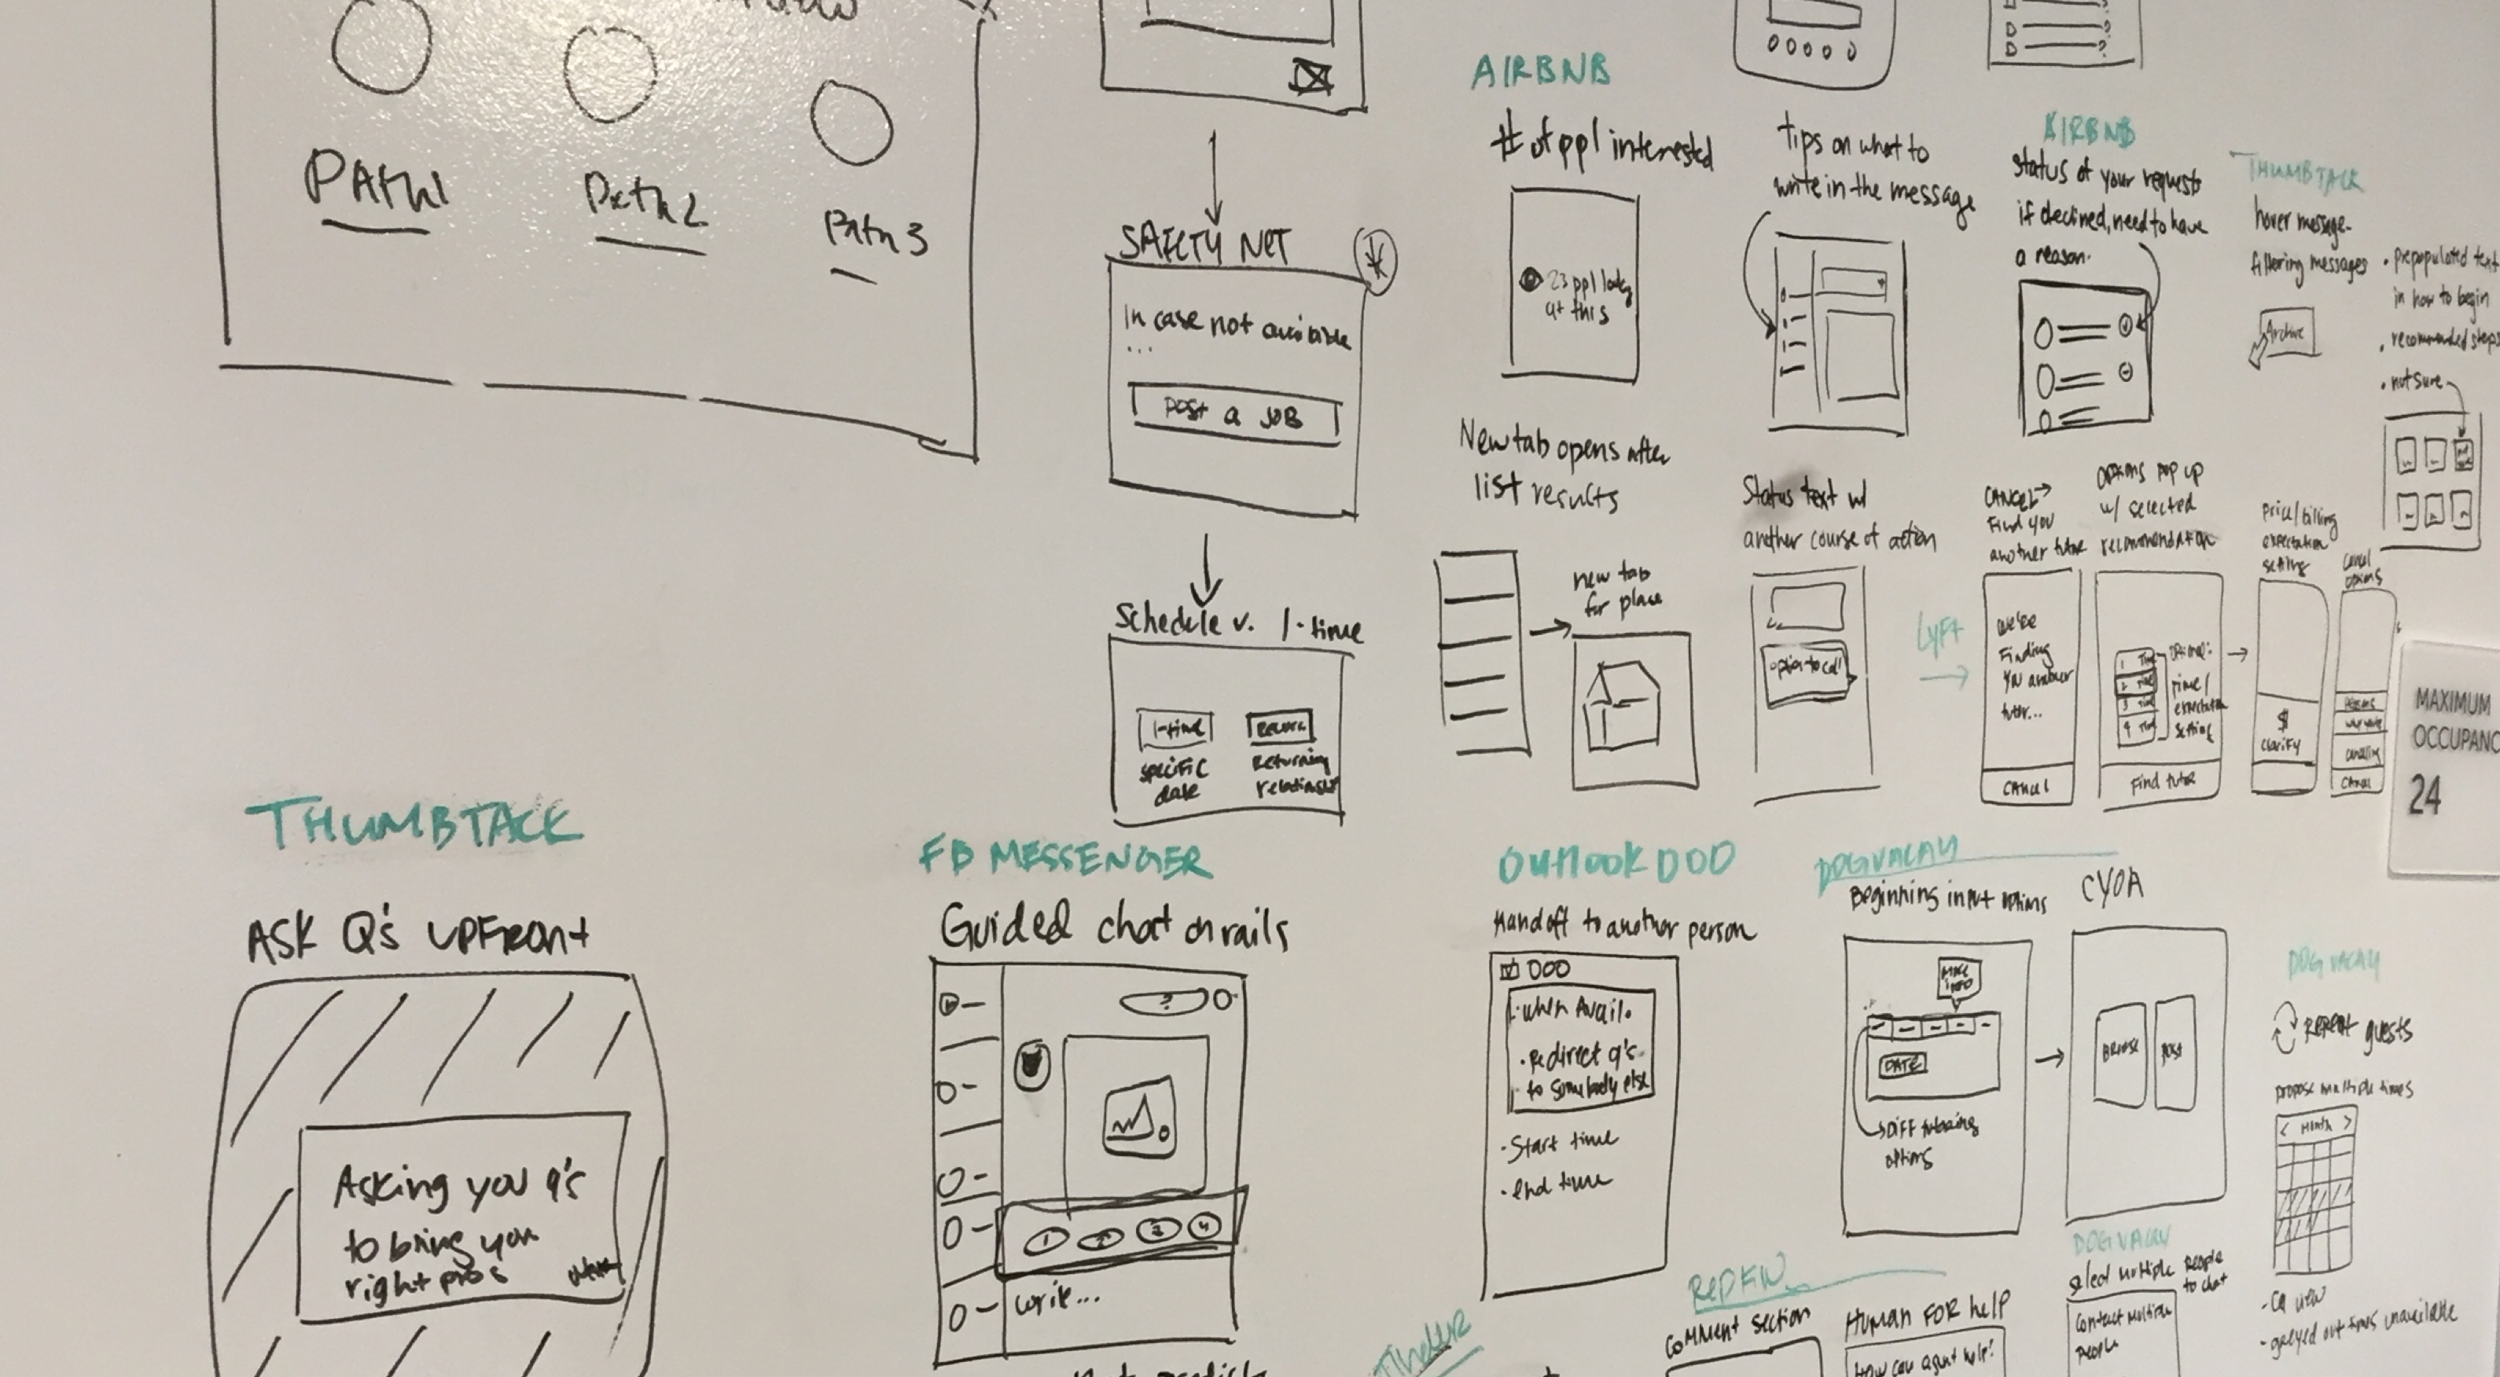 inspiration - The group looked at inspiration ranging from DogVacay and UrbanSitter to Facebook Messenger chatbot and Slack. Below are some of the relevant big ideas from the inspiration using the Google Design Sprint lightning demos process.